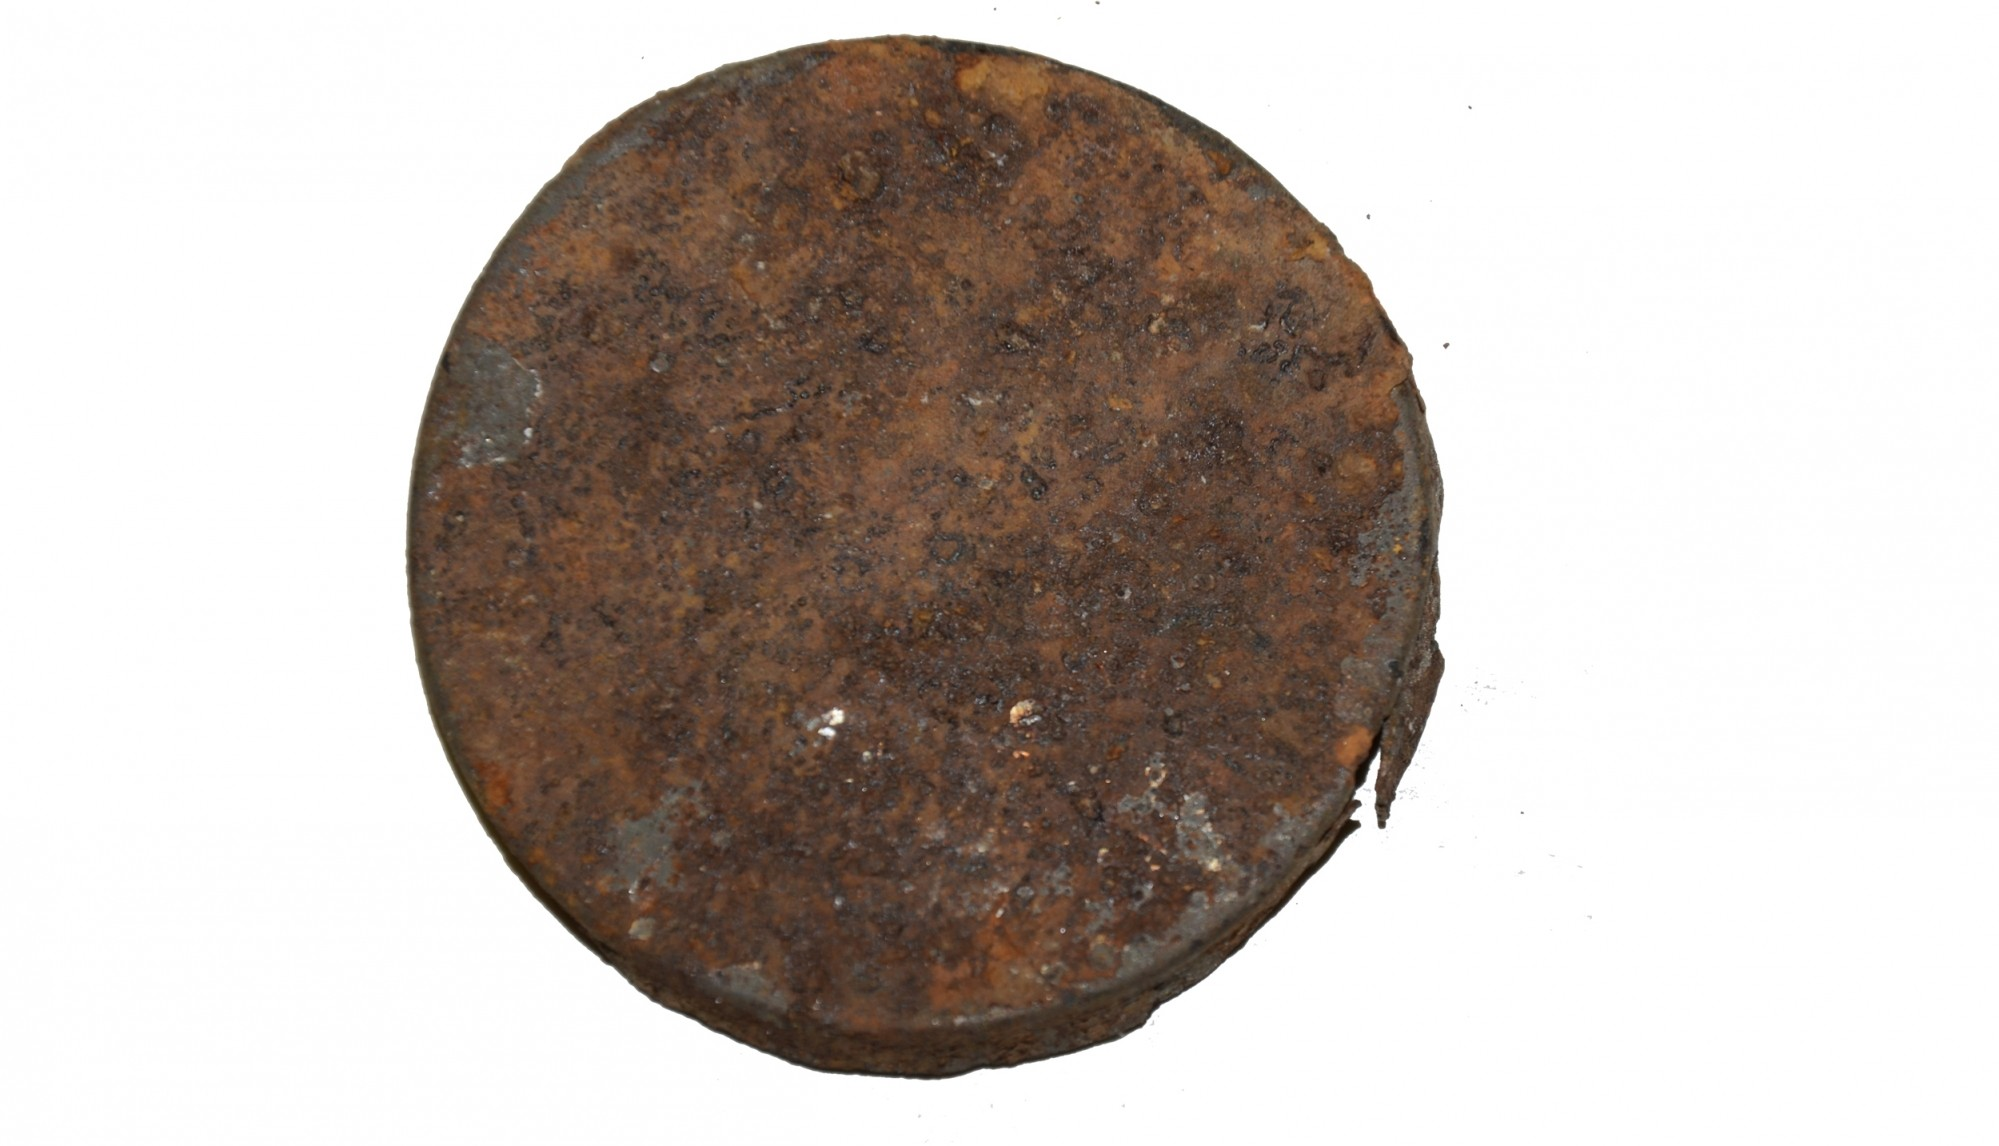 LID FROM PERCUSSION CAP TIN RECOVERED ON THE SHERFY FARM, GETTYSBURG